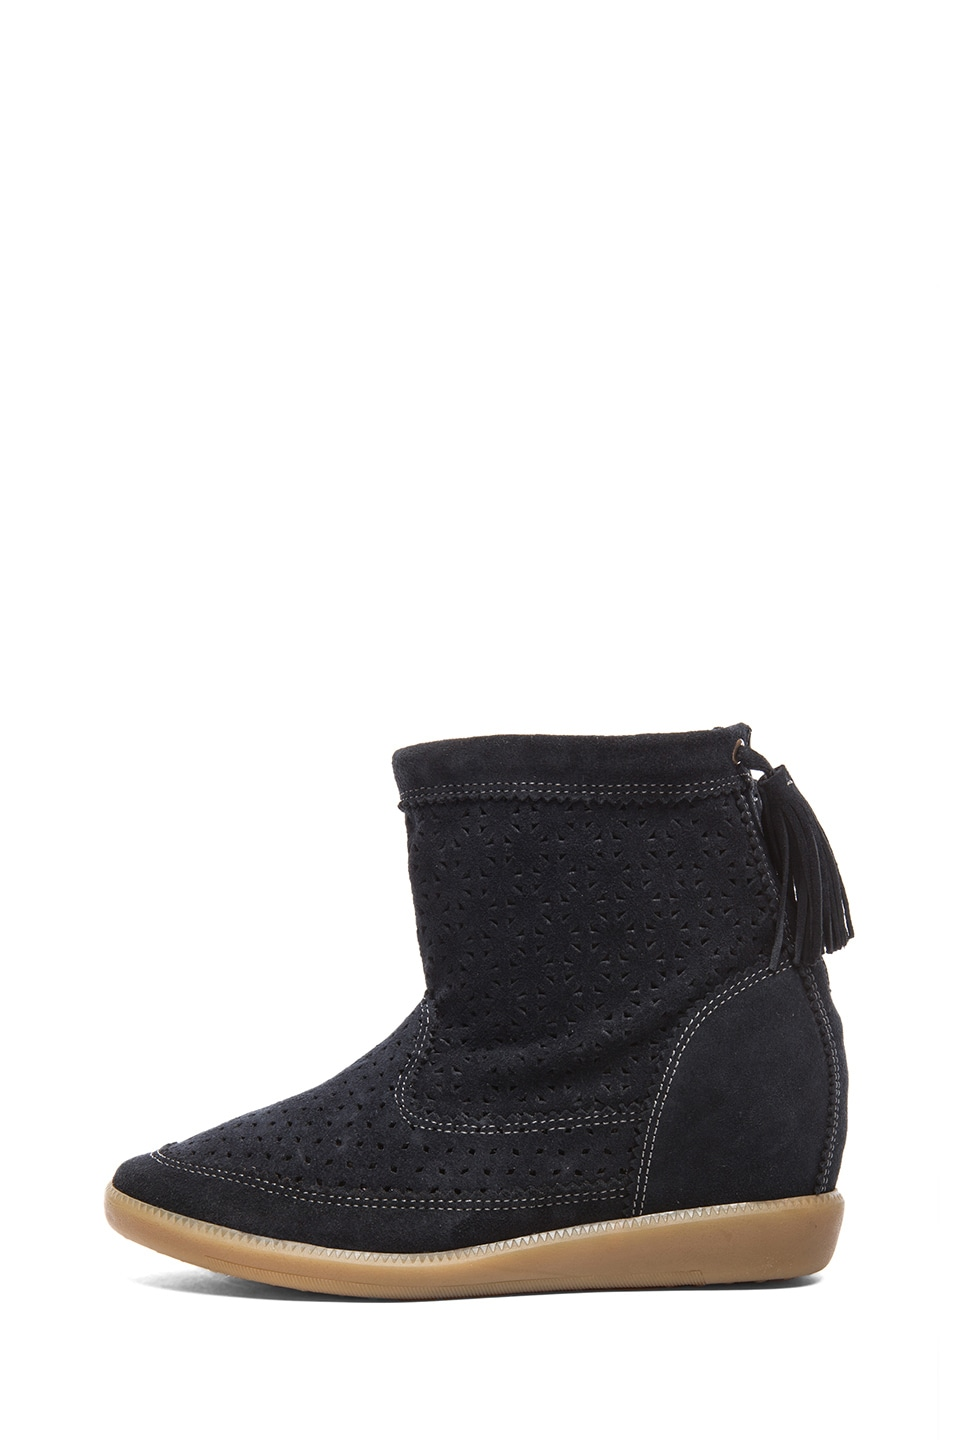 Image 1 of Isabel Marant Beslay Calfskin Velvet Leather Boots in Anthracite